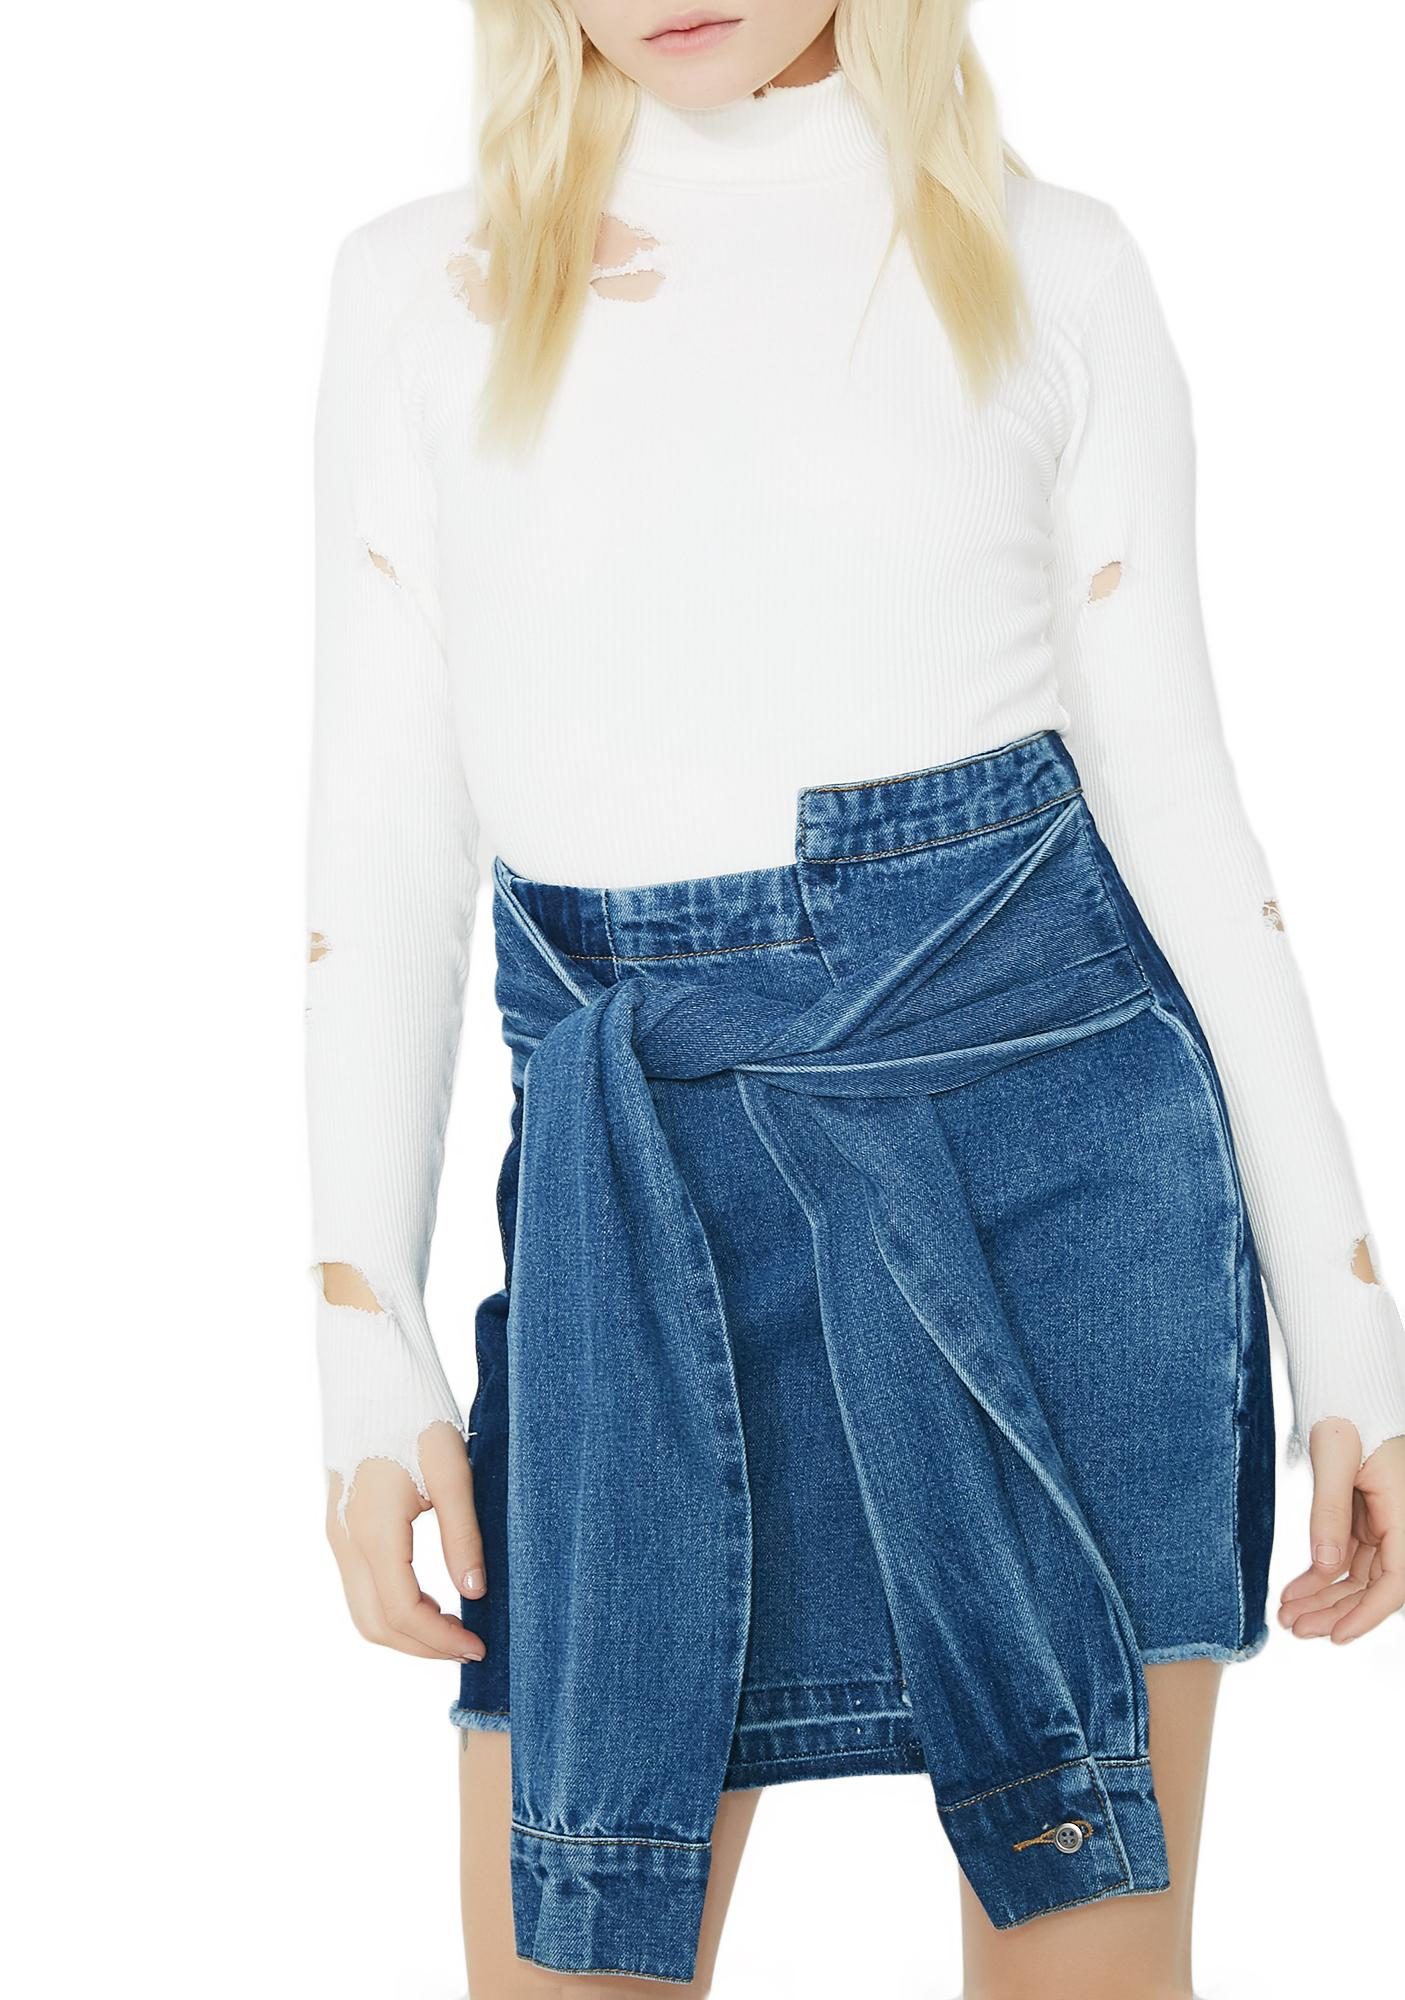 Not Trippin' Denim Skirt